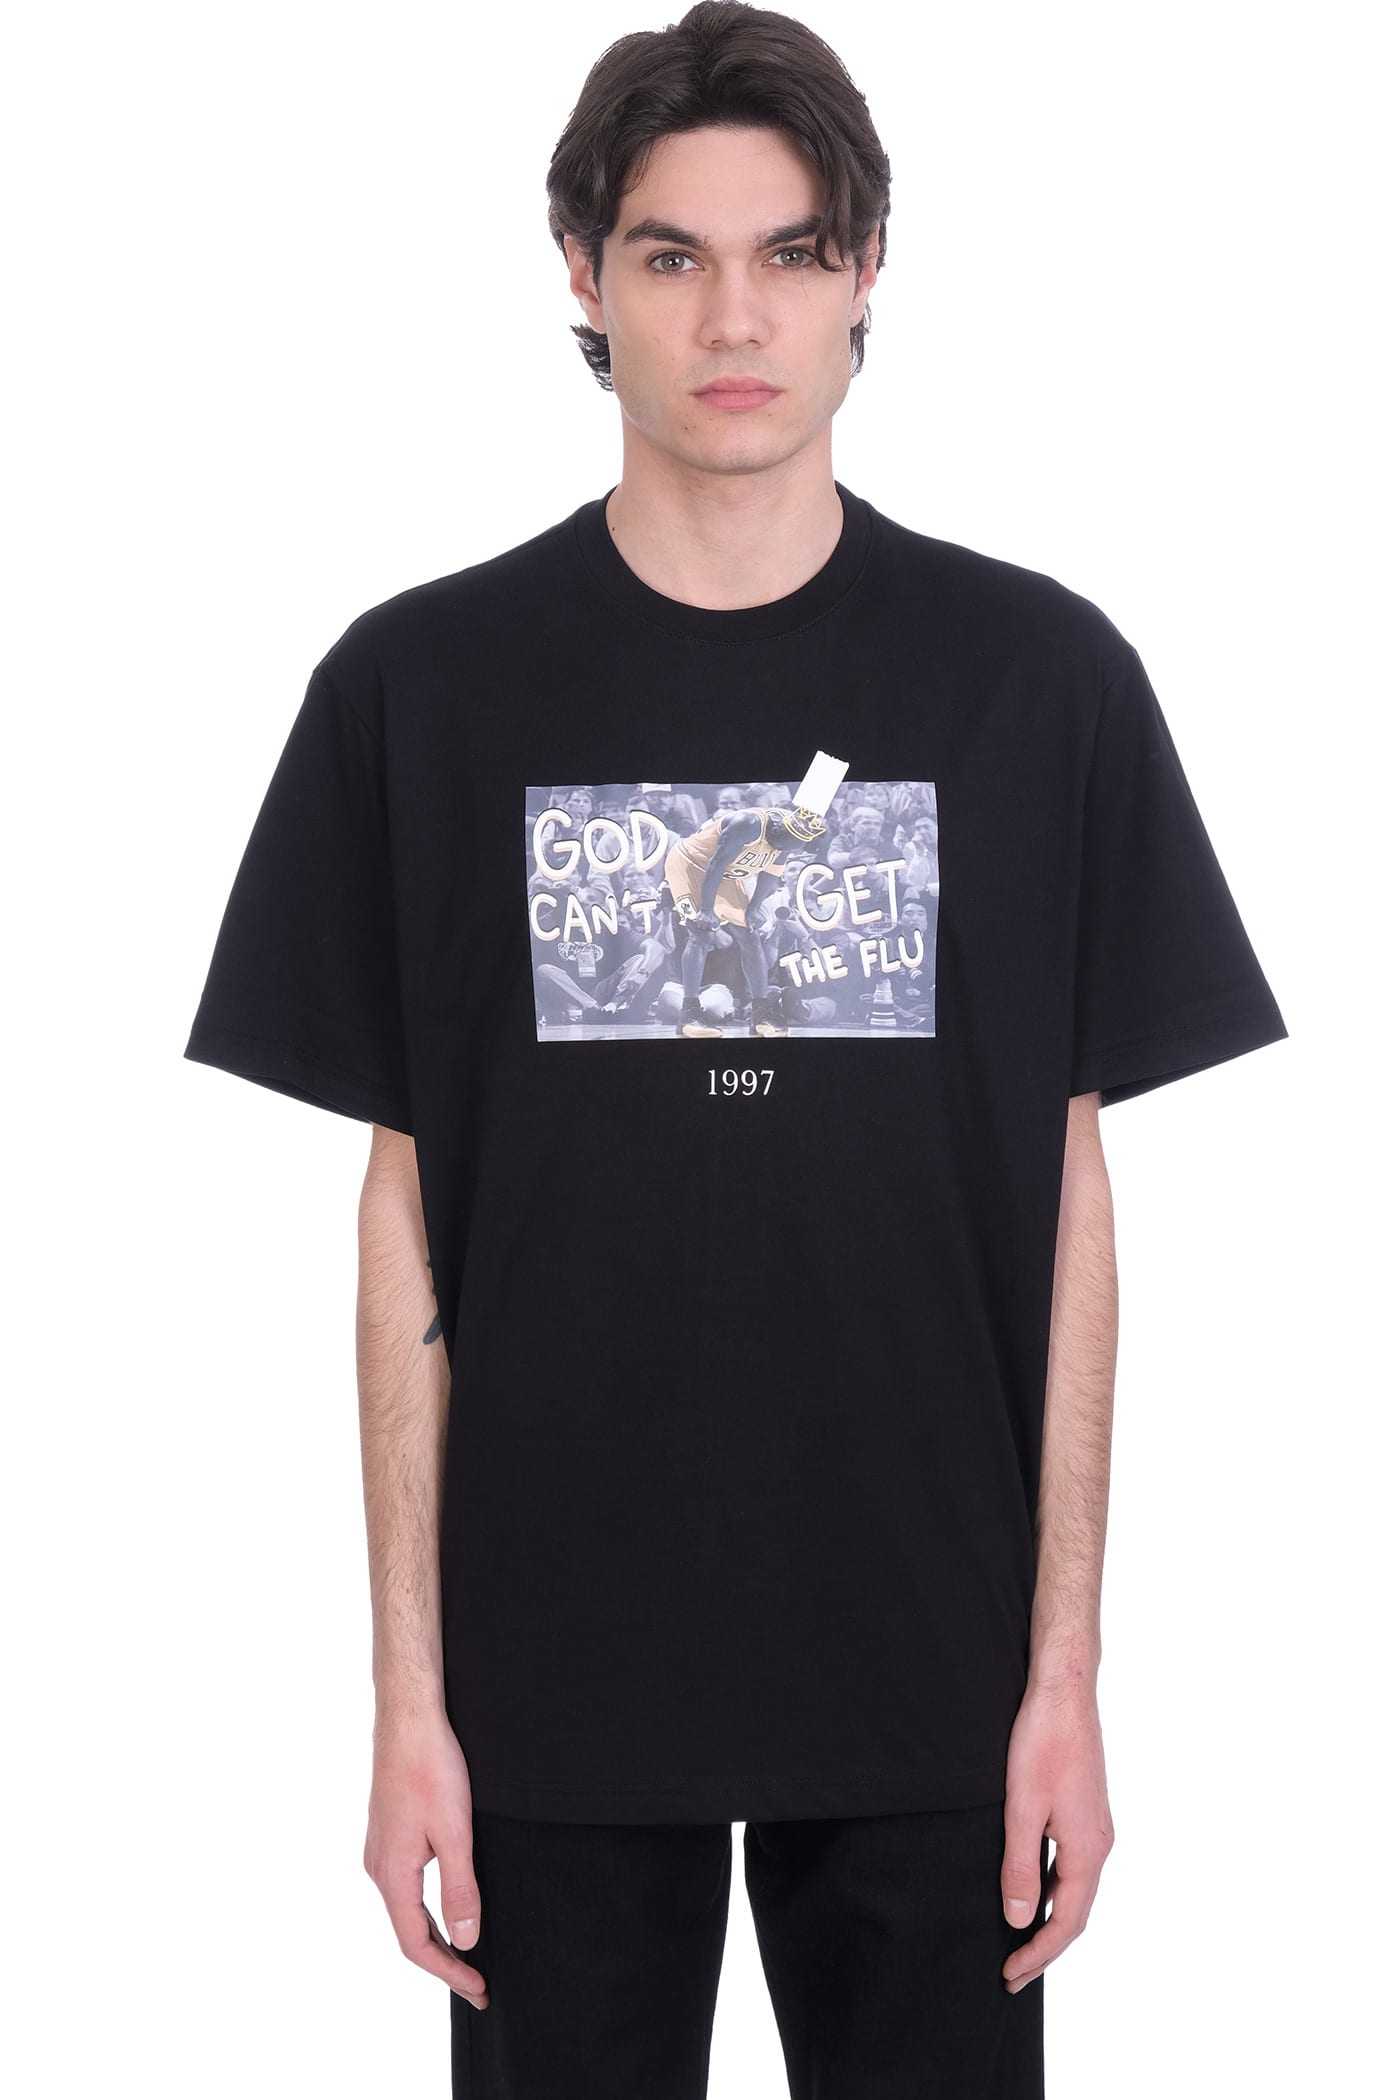 Throwback T-SHIRT IN BLACK COTTON